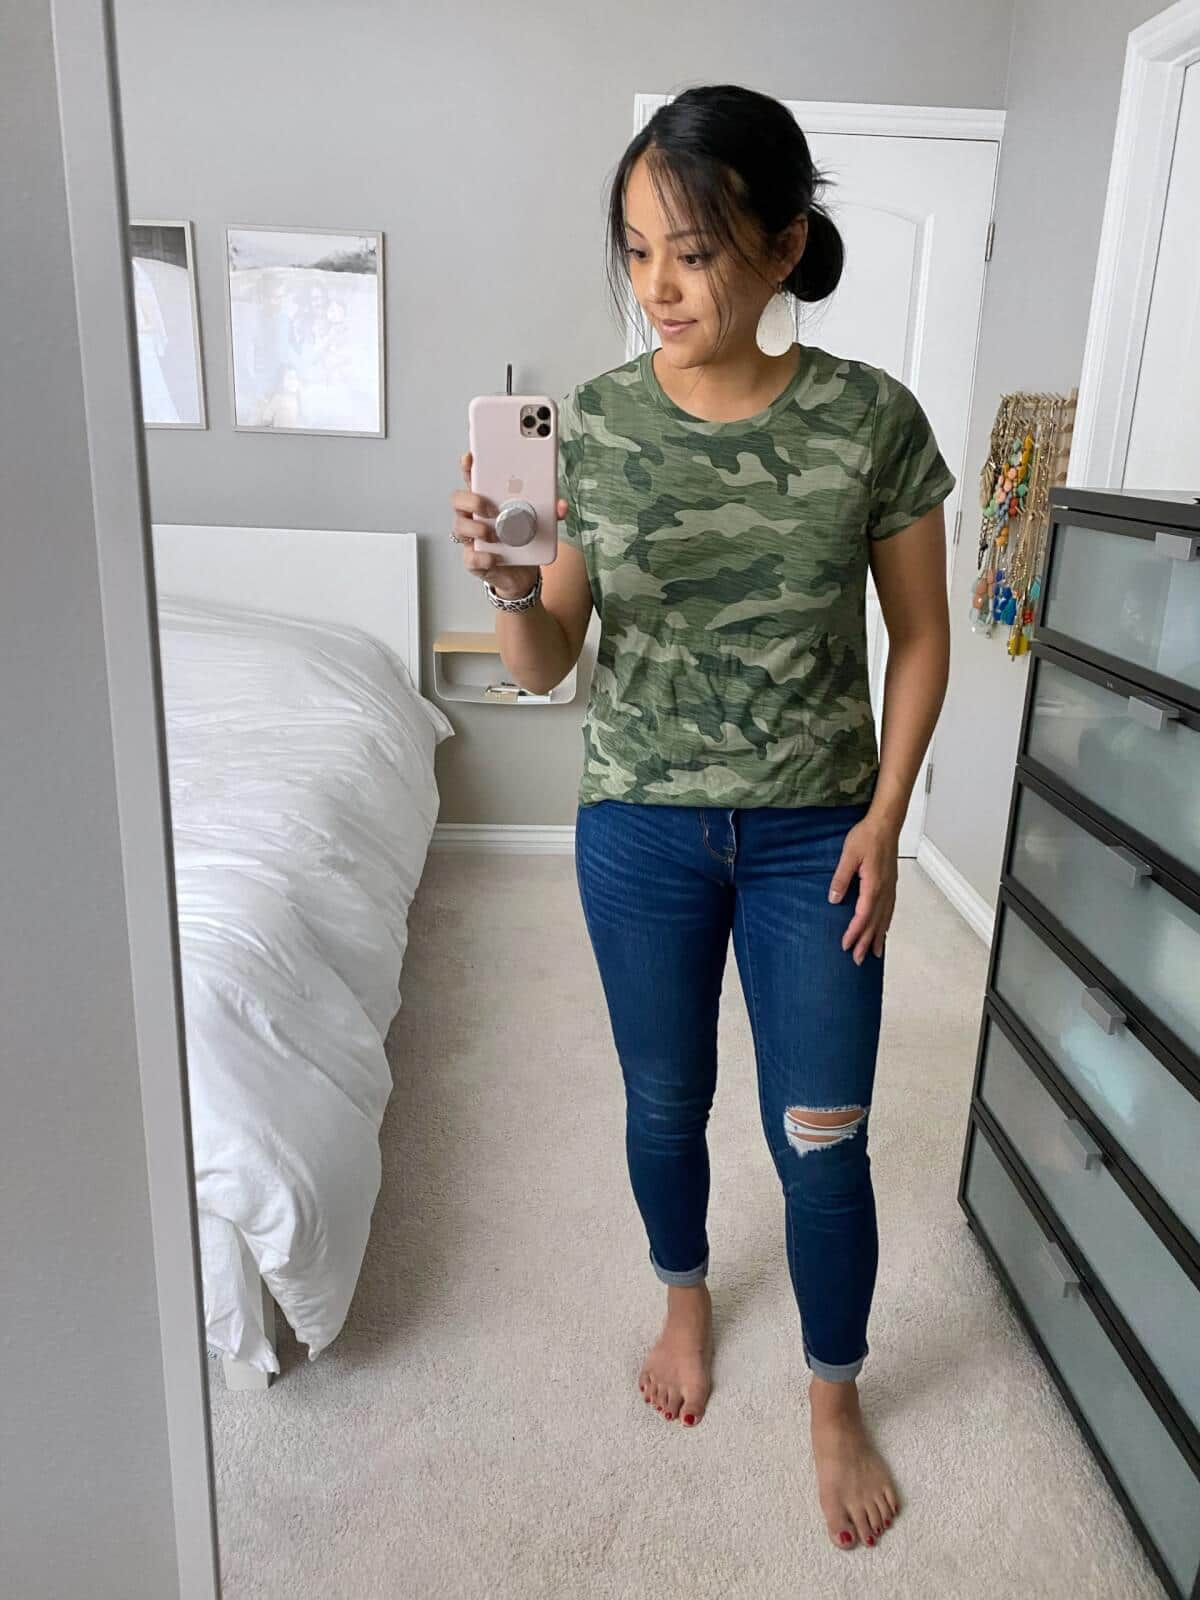 Casual Jeans Outfit: camo tee + distressed jeans + white leather earrings